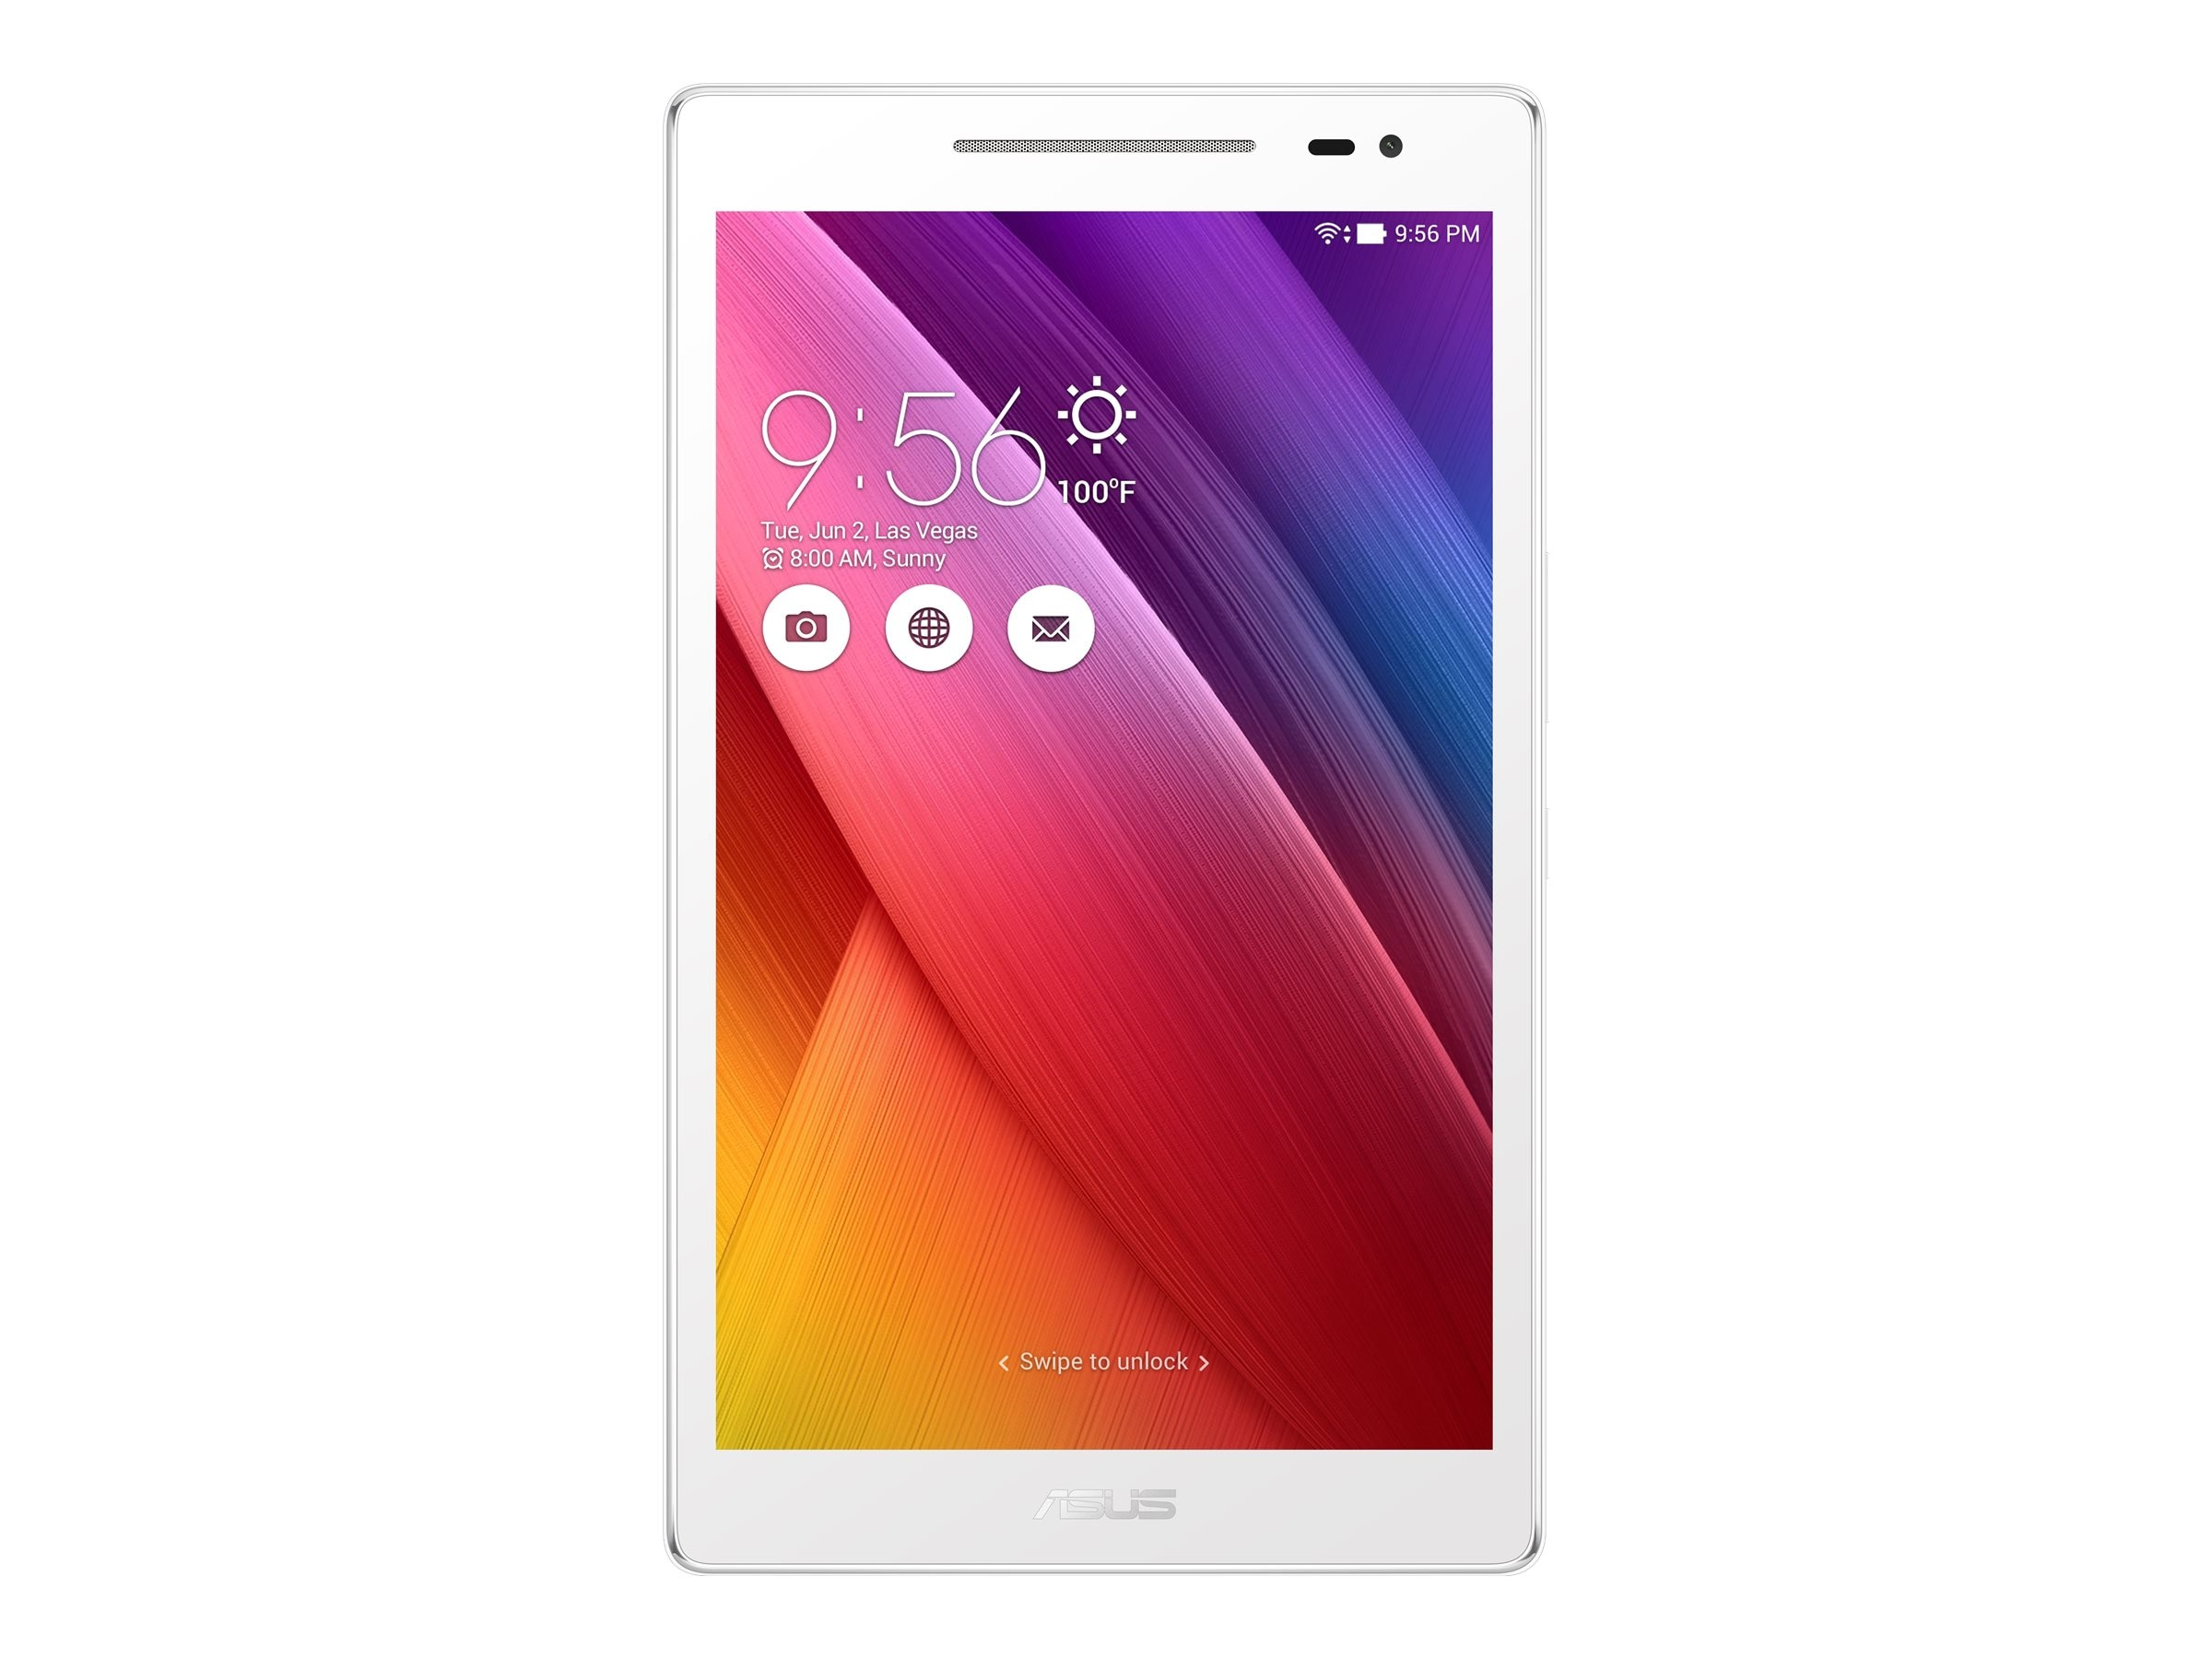 Asus Tablet PC Core Atom x3-C3200 2GB 16GB 8 White